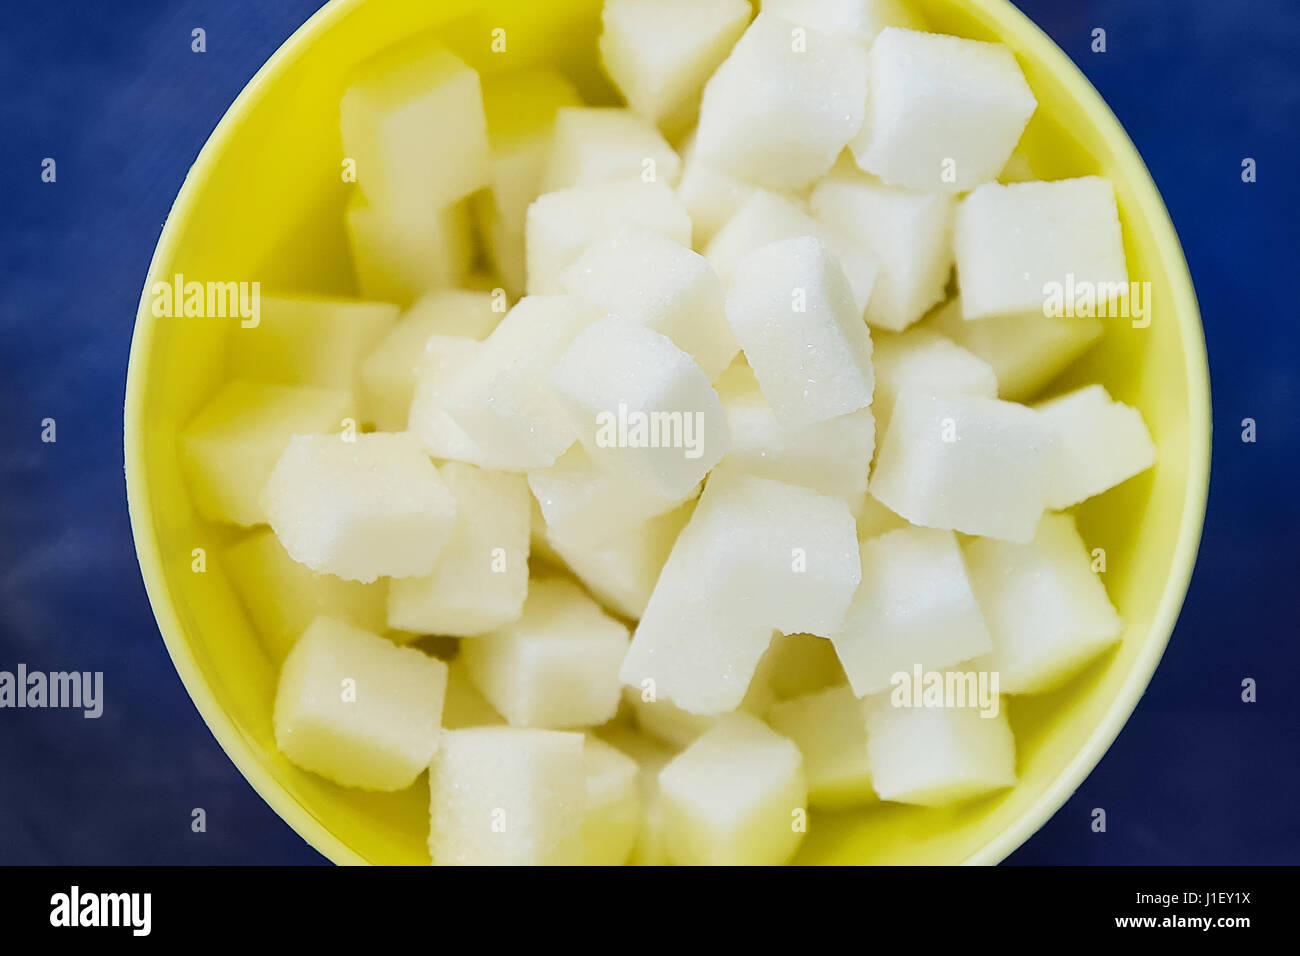 Sugar refined cubes in a yellow plate on a blue table - Stock Image